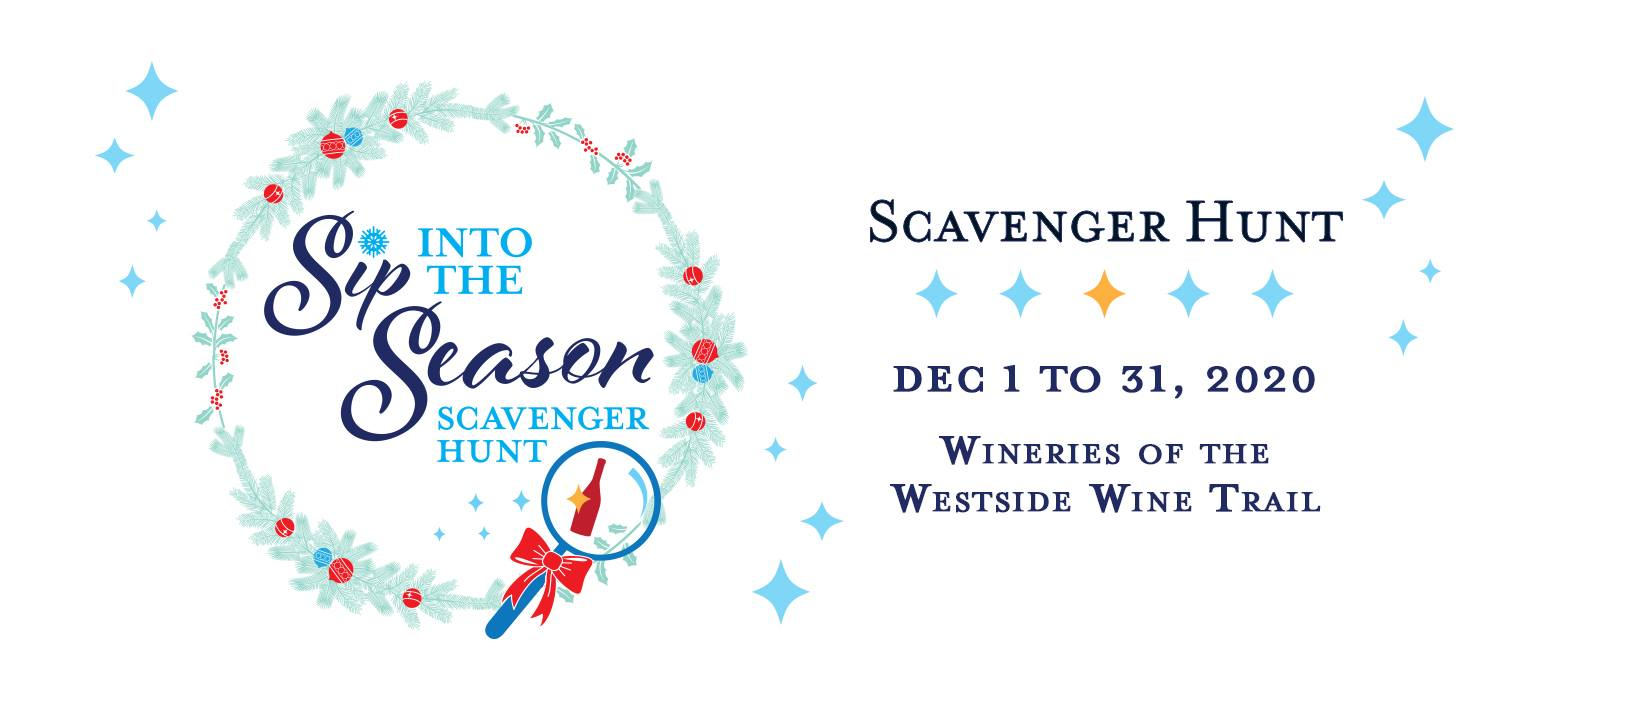 sip into the season scavenger hunt